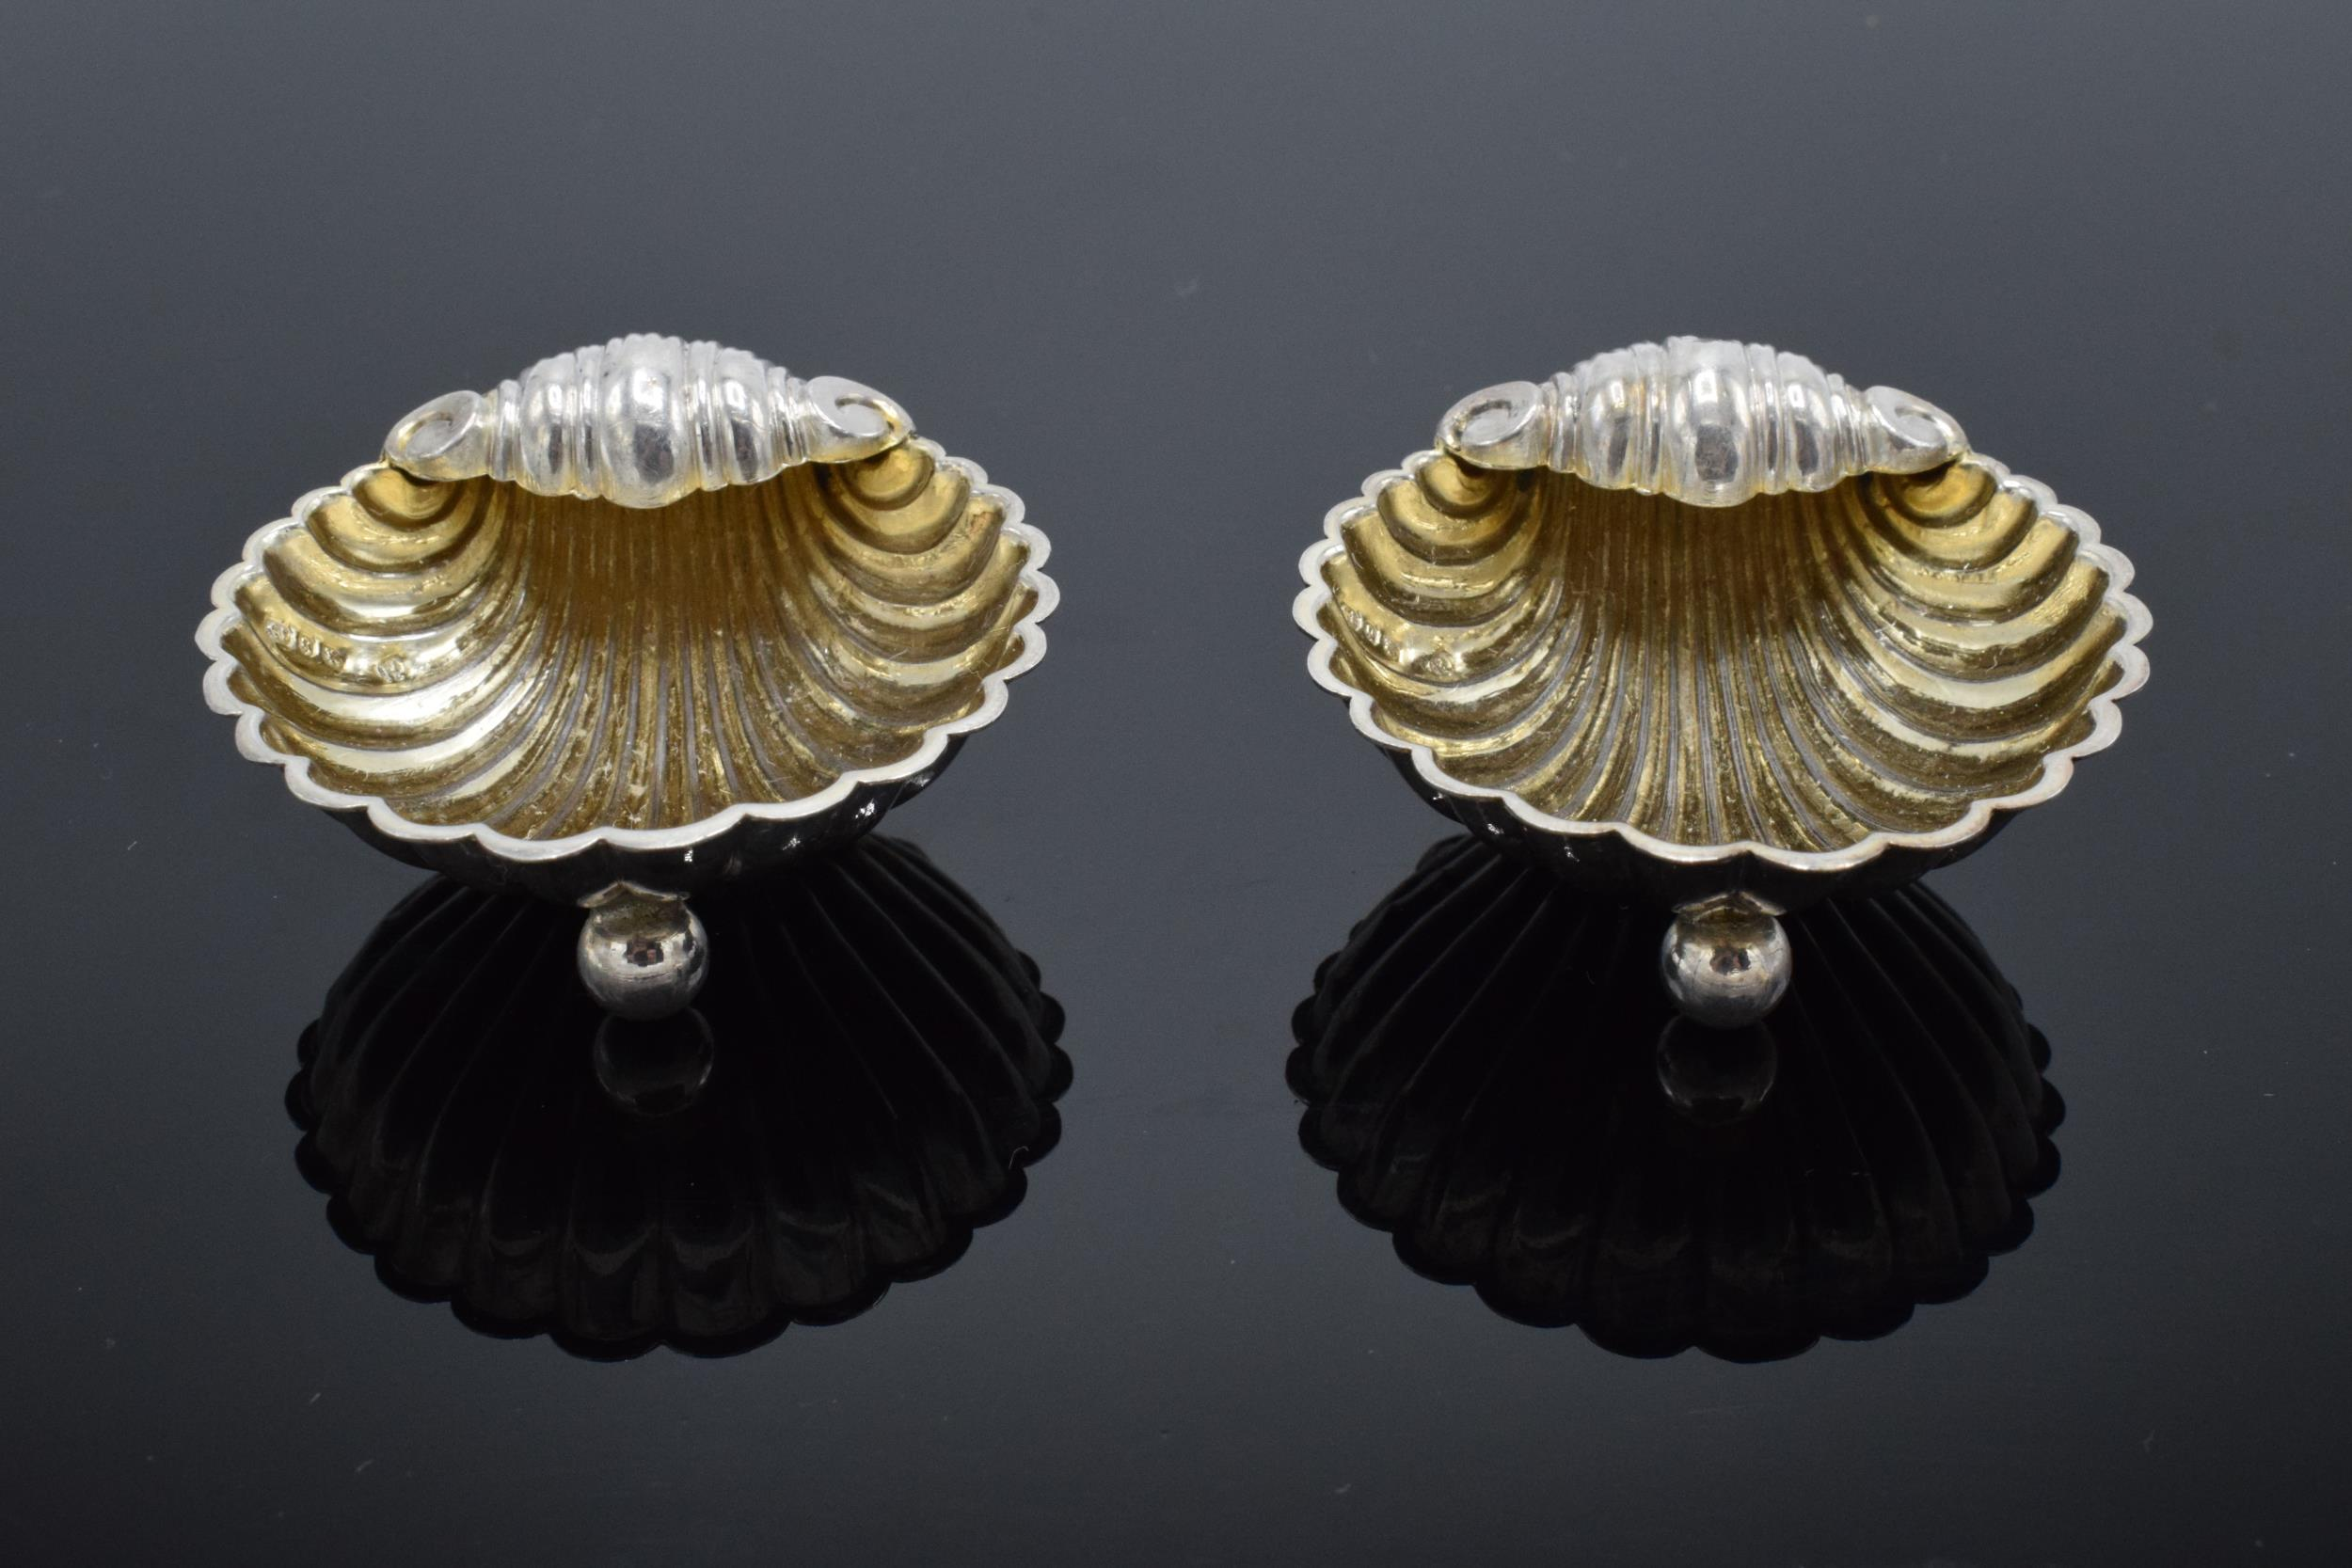 A pair of silver table salts in the form of shells raised on ball feet. Hallmarked for Birmingham